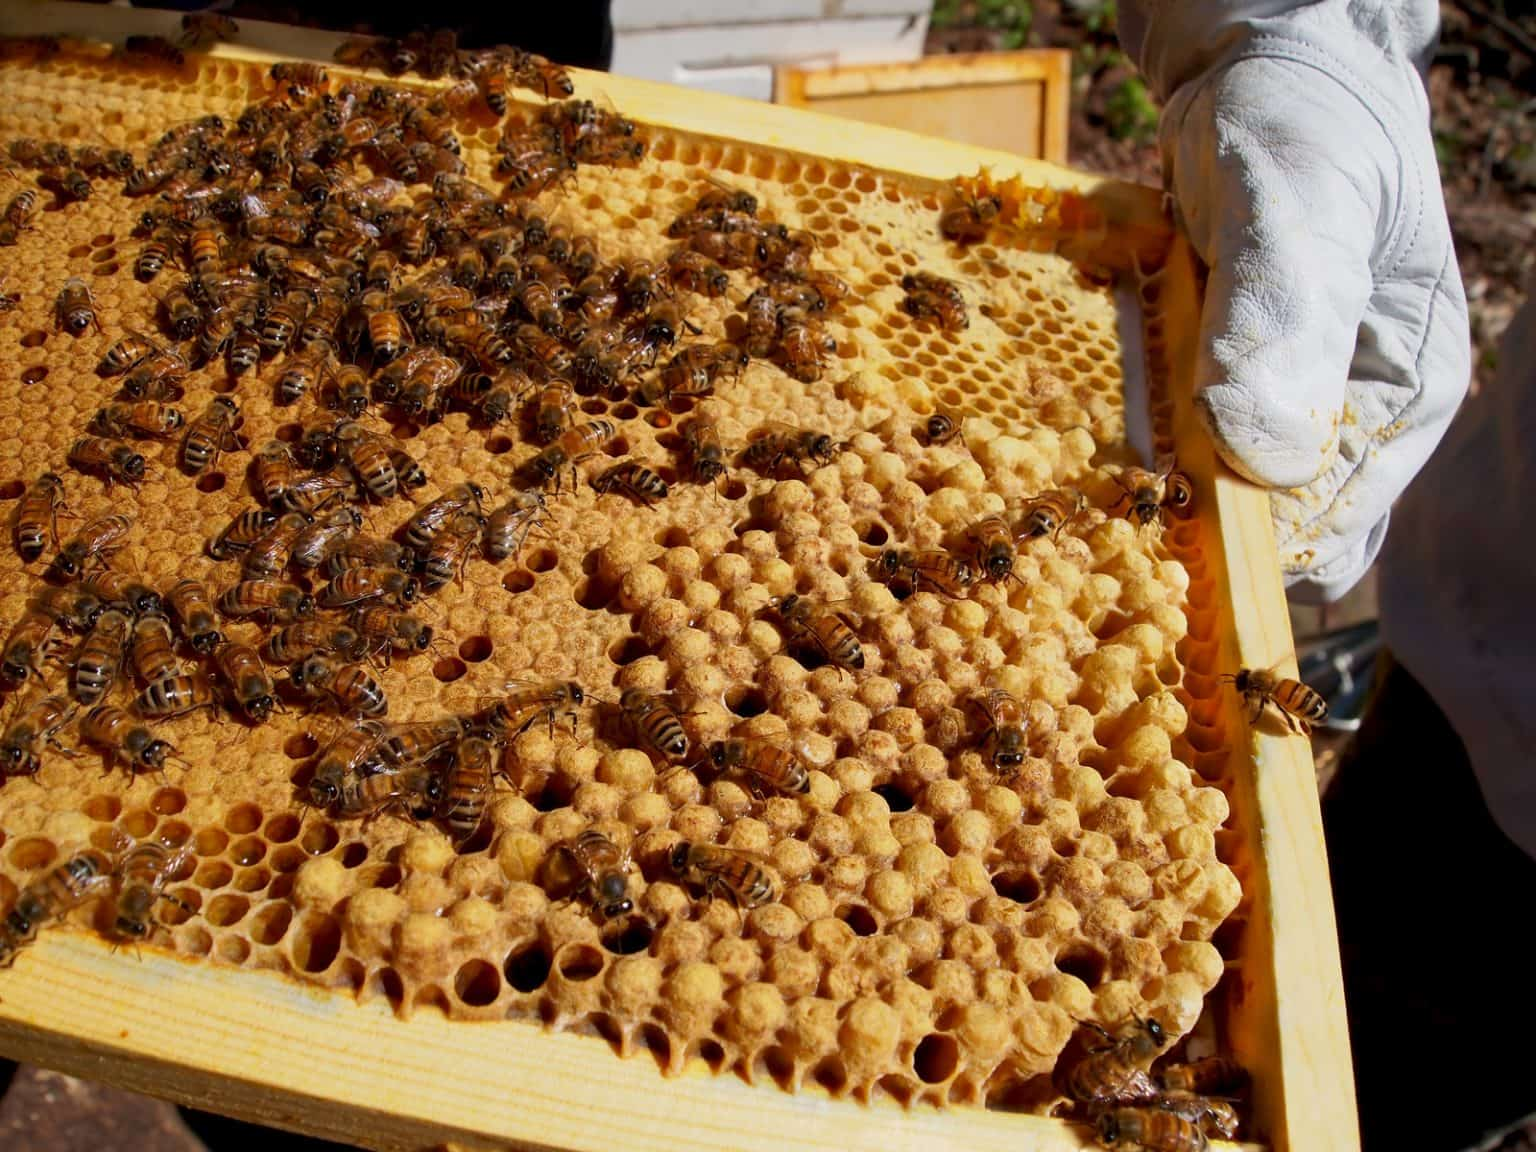 how to build a brood box for bees